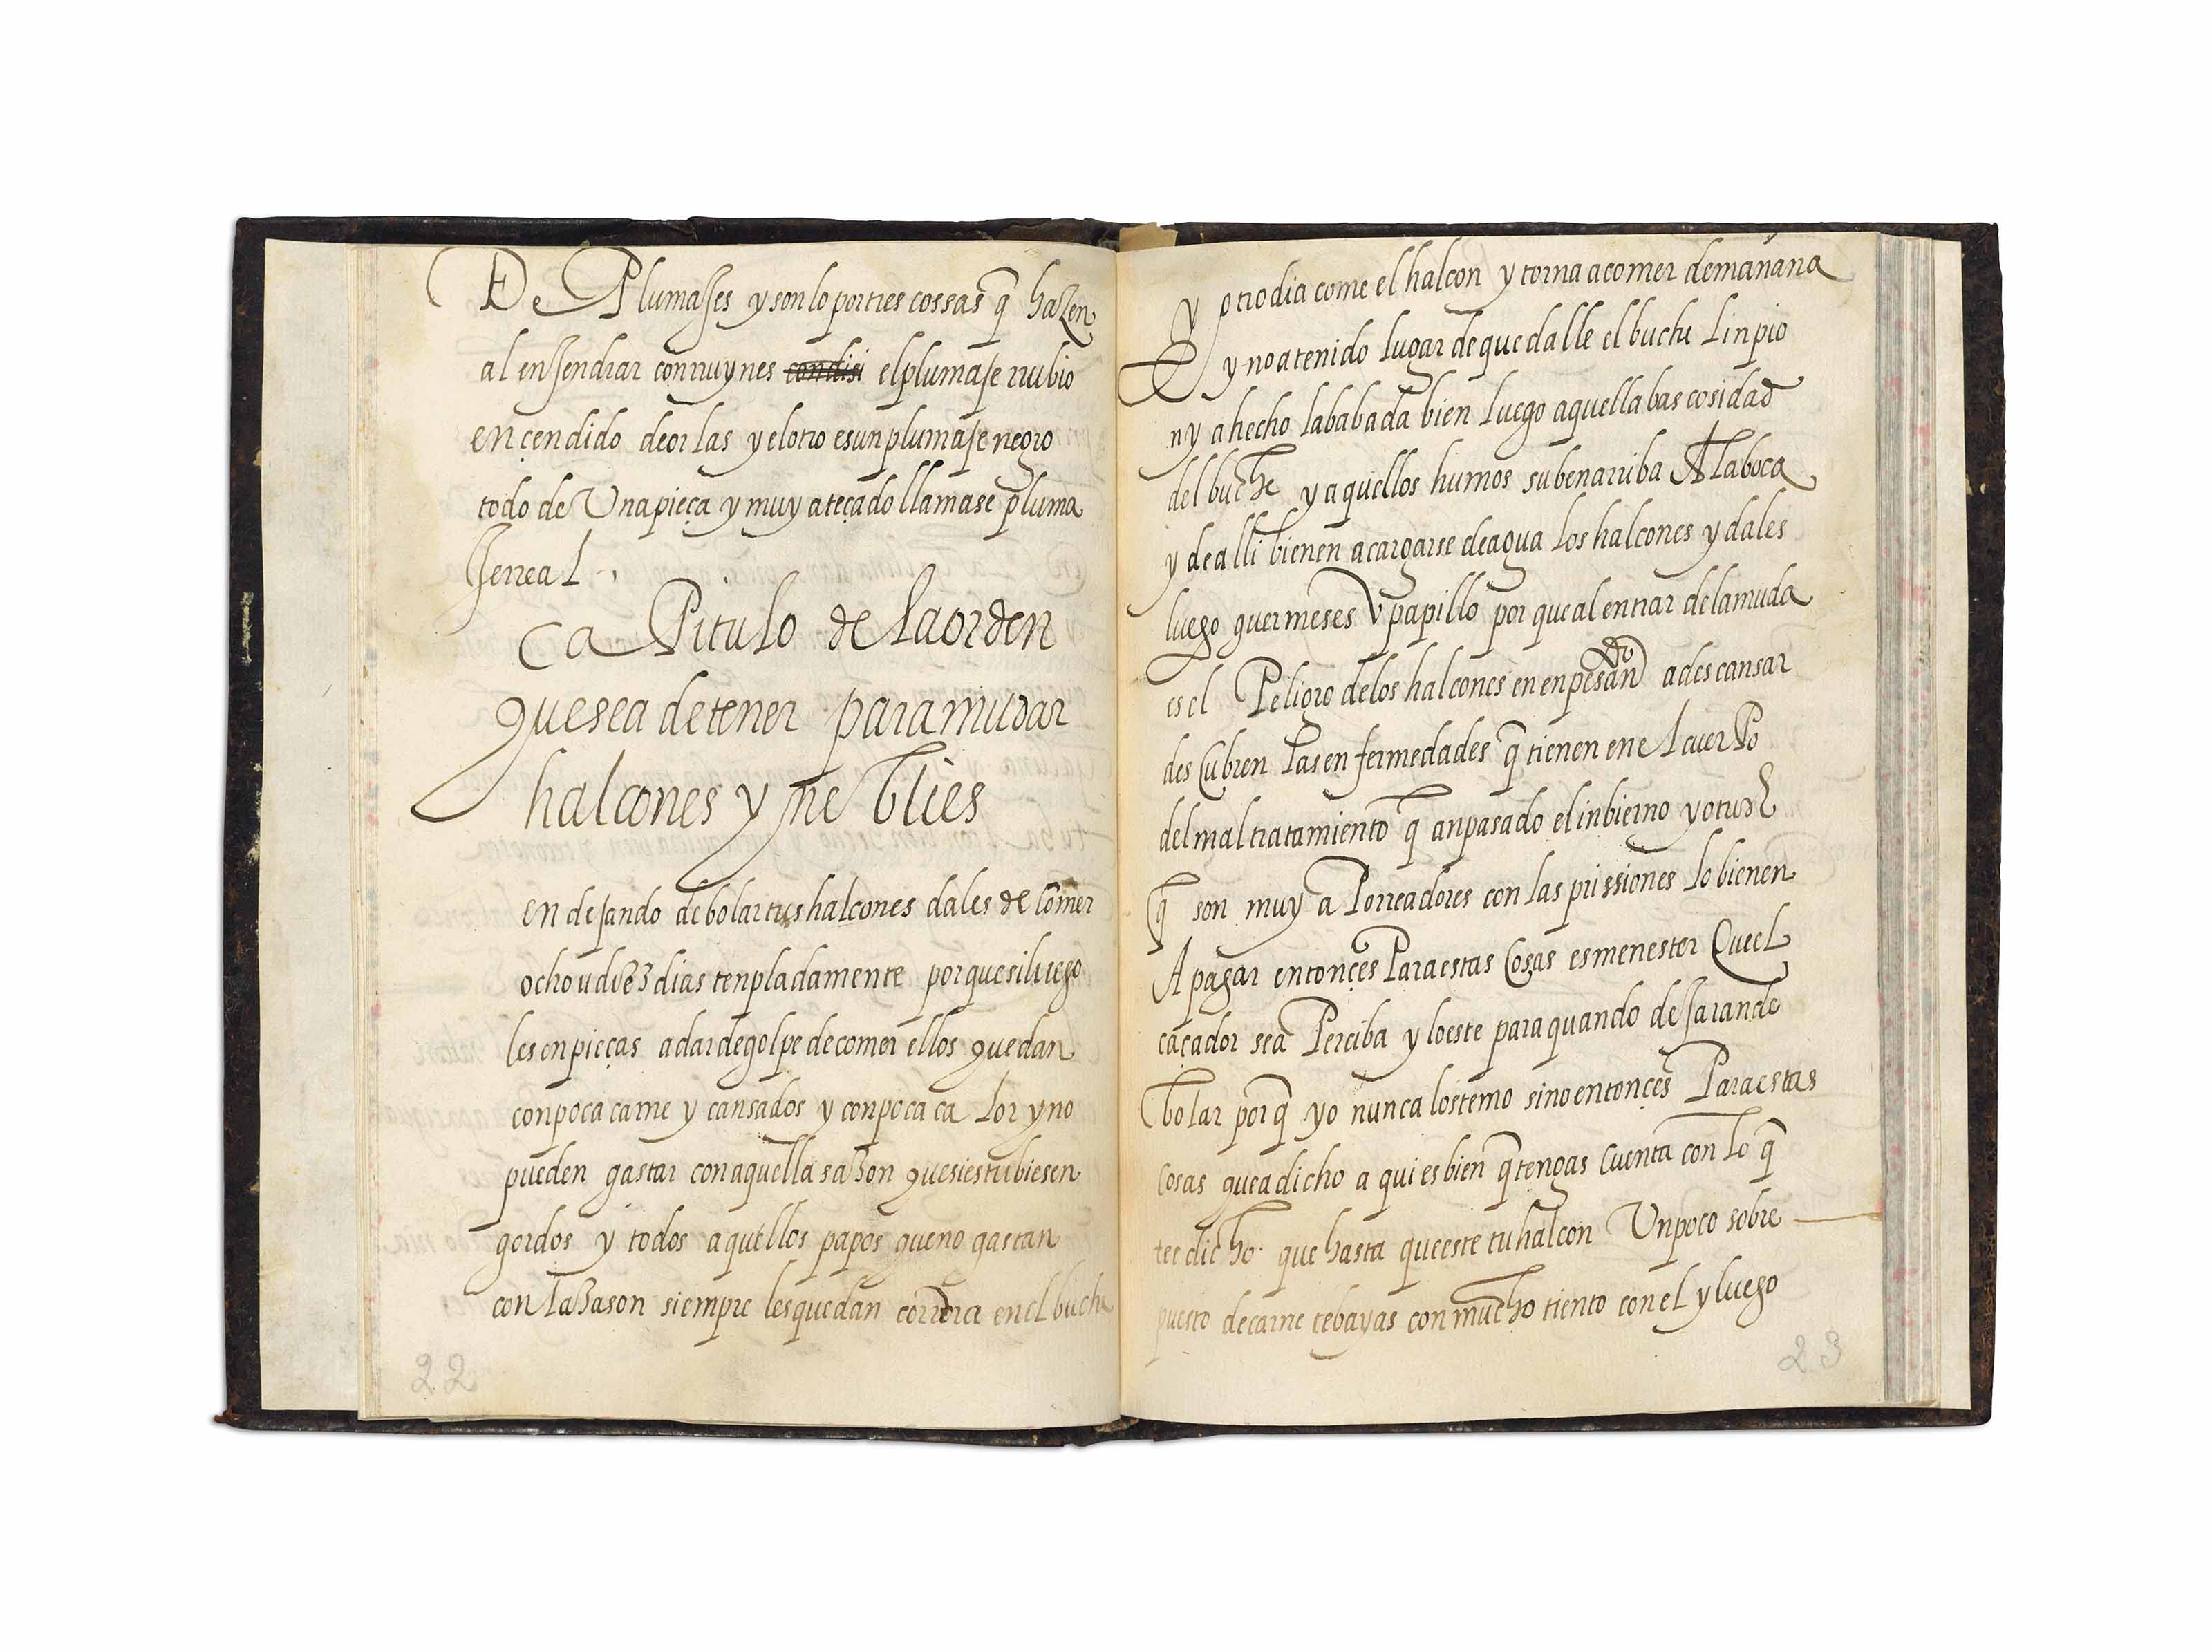 FALCONRY MANUSCRIPT -- [(?) LOPEZ DE AYALA, Pedro]. Libro de cetreria de halcones. Manuscript treatise in 18 chapters, 17th-century, 63 leaves, 8° (194 x 140mm) (the text faded in places, occasional staining to margins); near contemporary calf, covers with gilt single fillet frames enclosing gilt arms (rebacked to style). Provenance: the arms of Castile y Leon on the binding; in the library of Joaquin María Abaurre, a noted Sevillian collector of books on hunting, 1926 (bookplate).  Beginning with a discussion of the plumage of gyrfalcons, and how to distinguish them, the author then lists how different types of falcon must be kept, fed and cared for, as well as describing the processes around their training and use -- including the intricacies of fitting their hoods -- and adds some information on the keeping of nightingales.